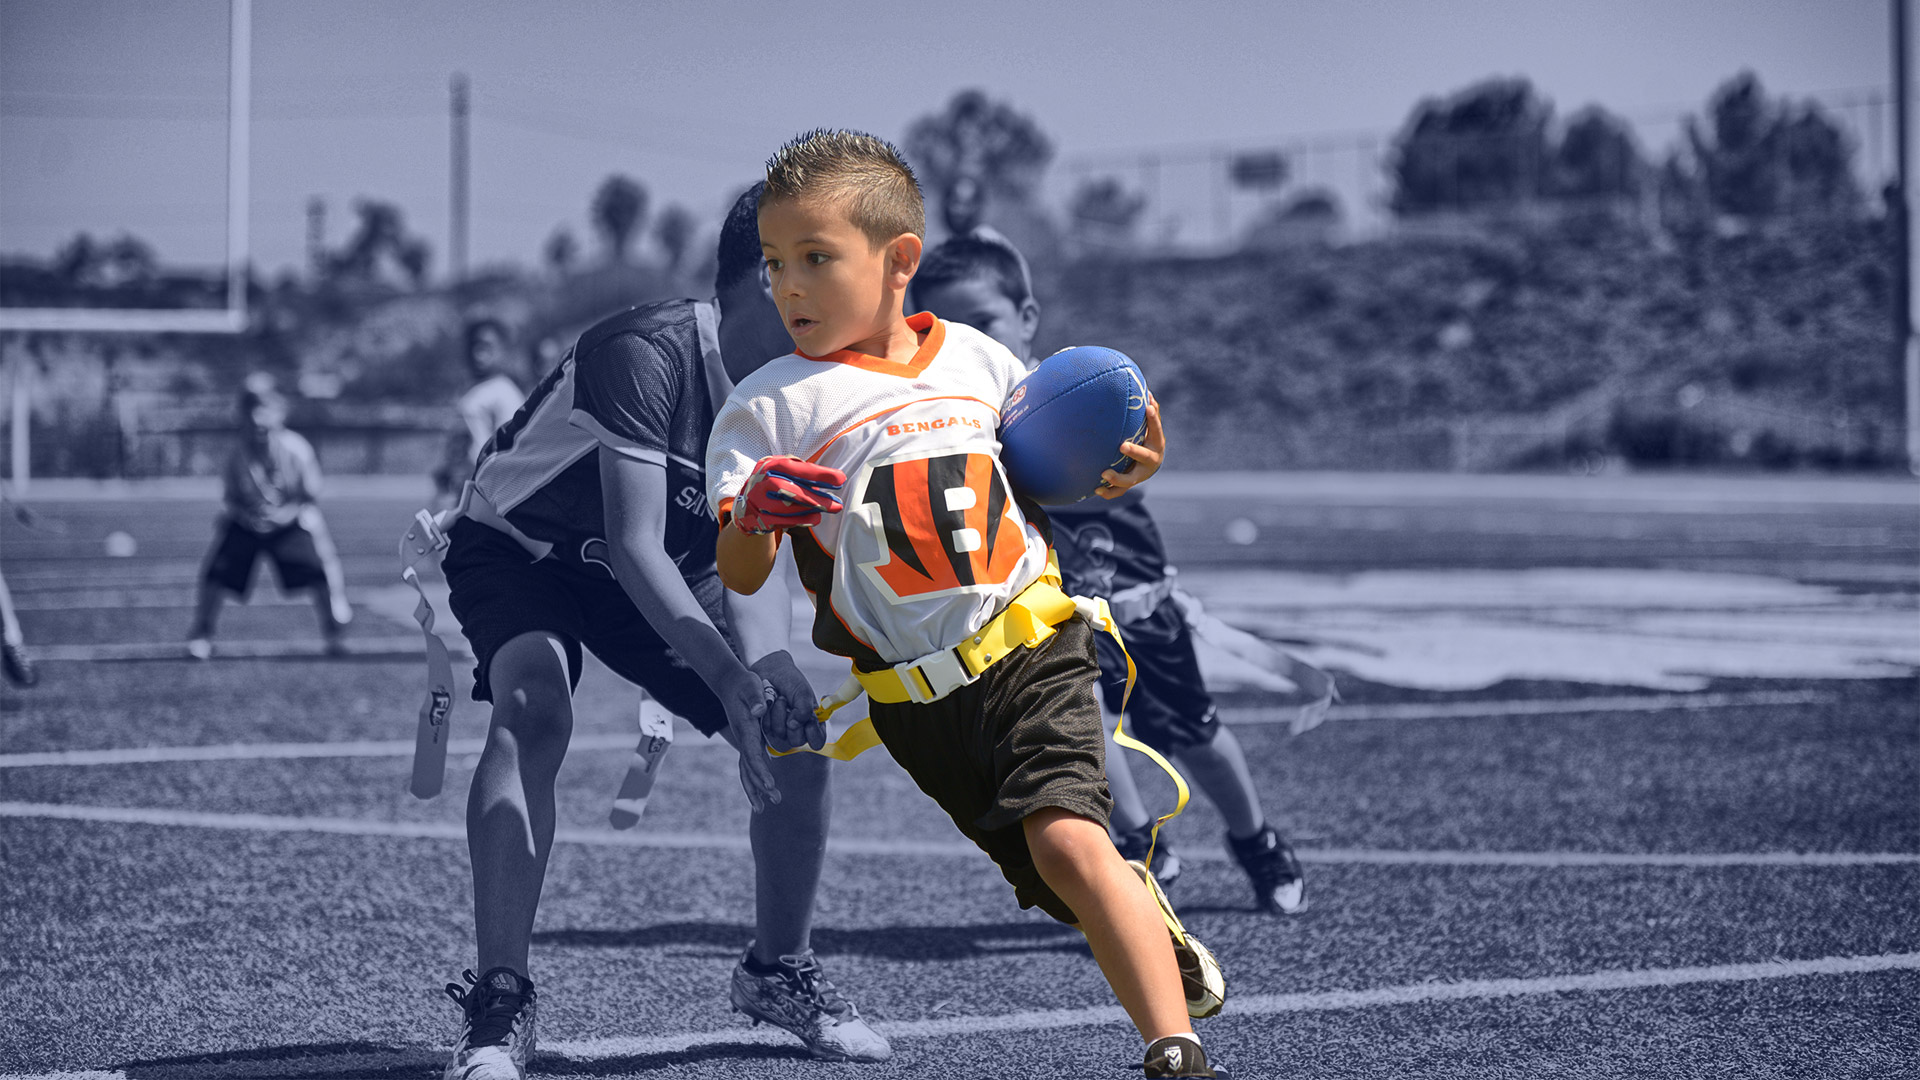 Youth Football Player Bengals